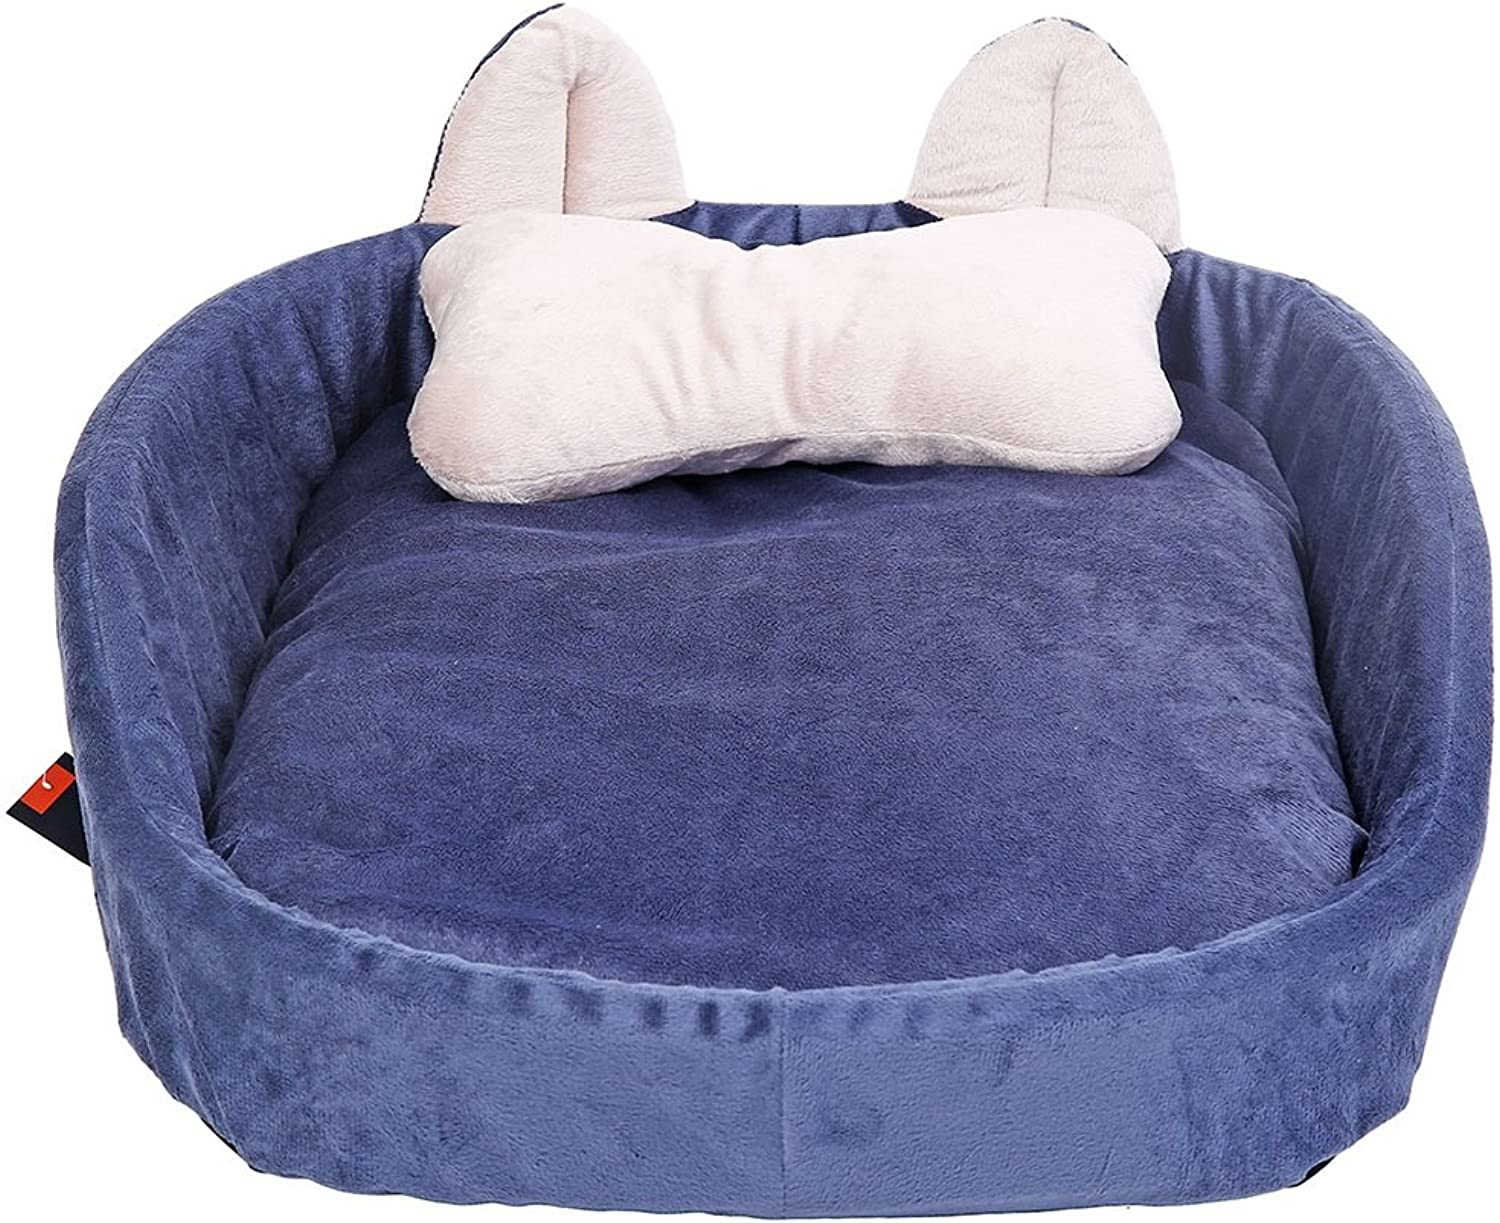 Pet bed Washable bluee Round PP Cotton Threedimensional Nesting Dog Hole Bed Pet Cats and Dog Beds (Size   75cm)